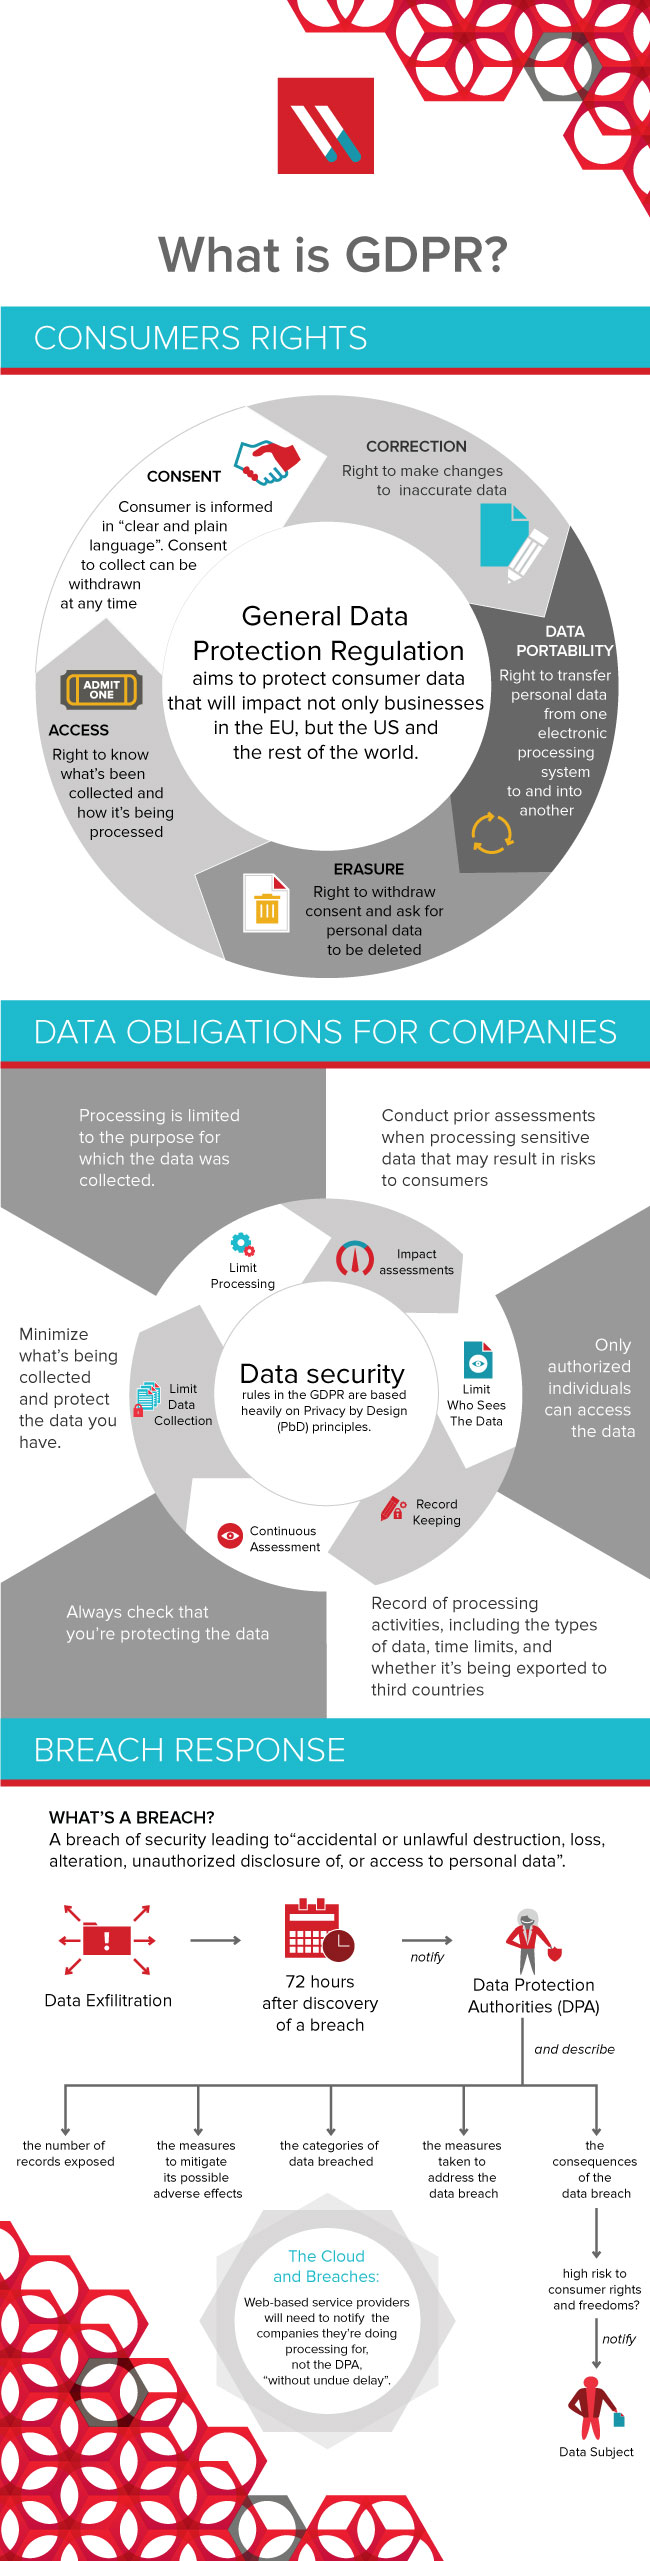 GDPR infographic by Varonis - source and more information